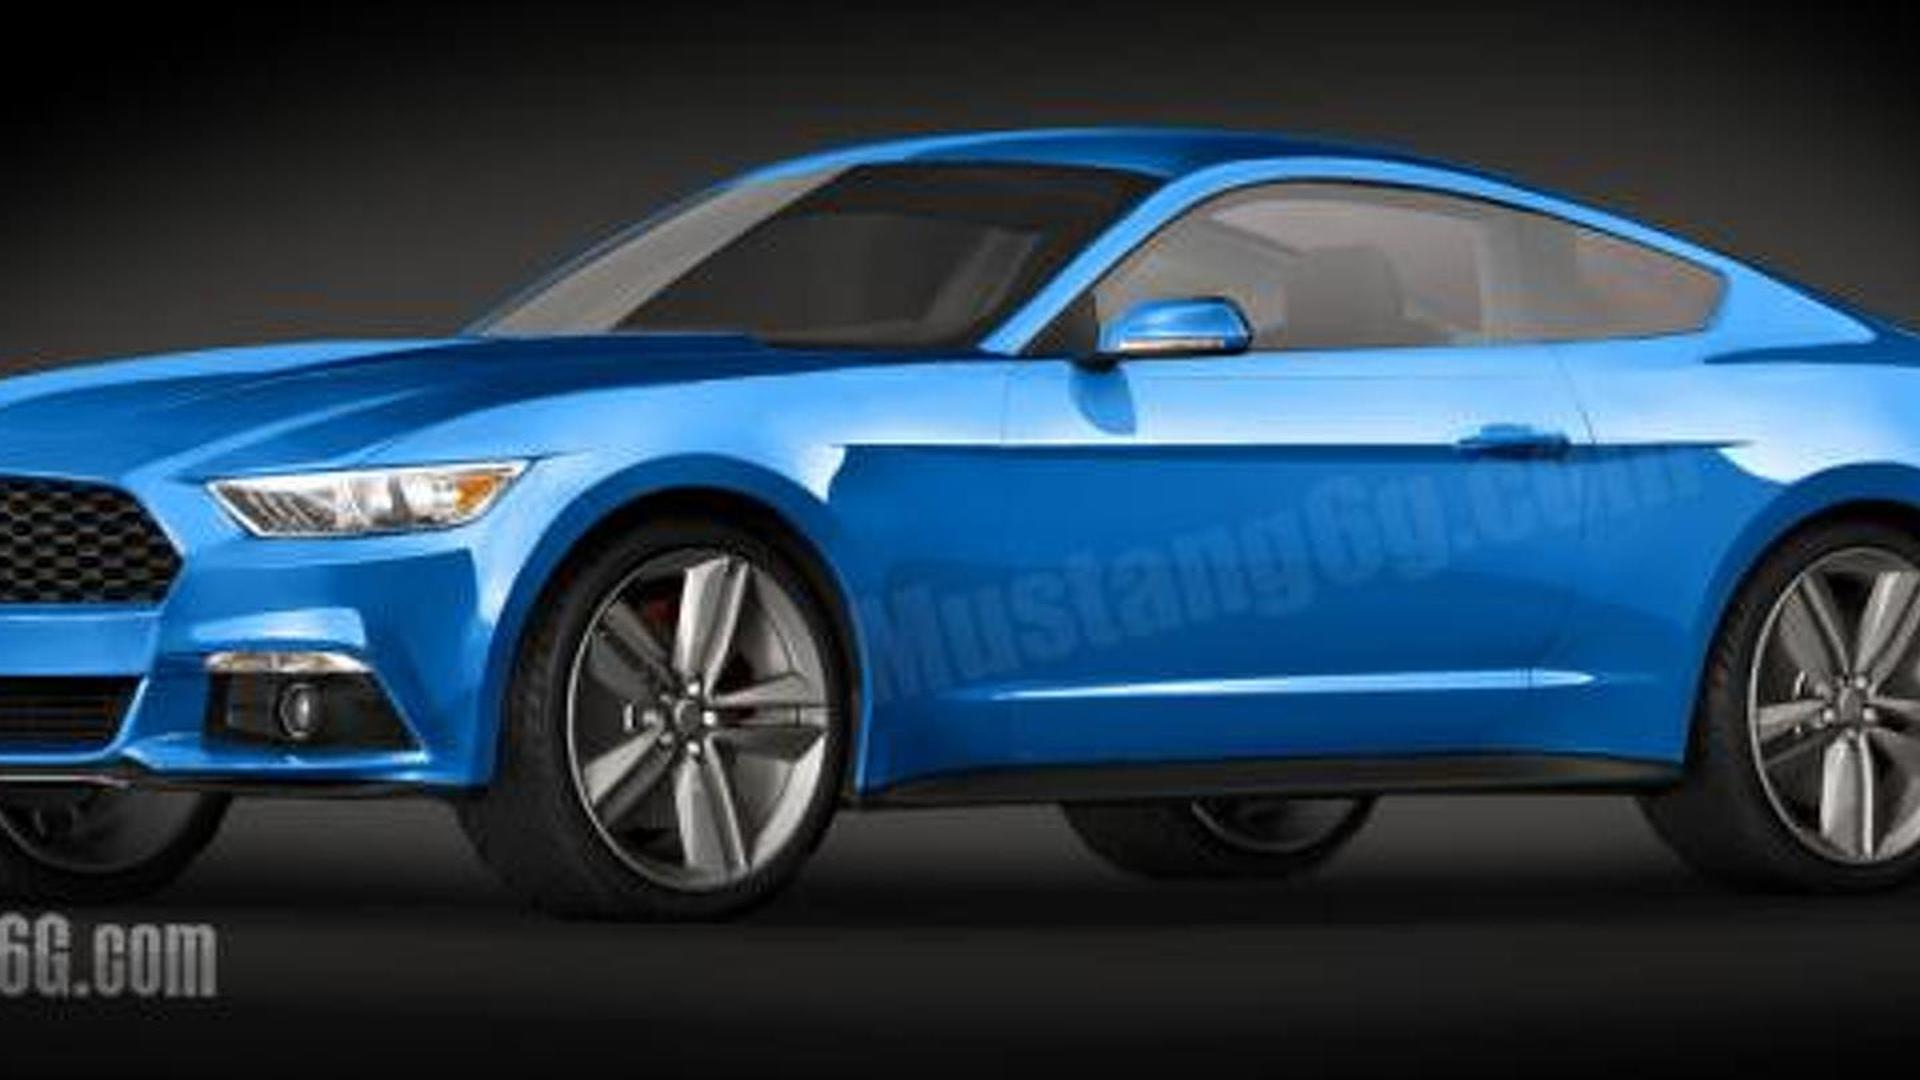 2015 Ford Mustang to be unveiled in December - report